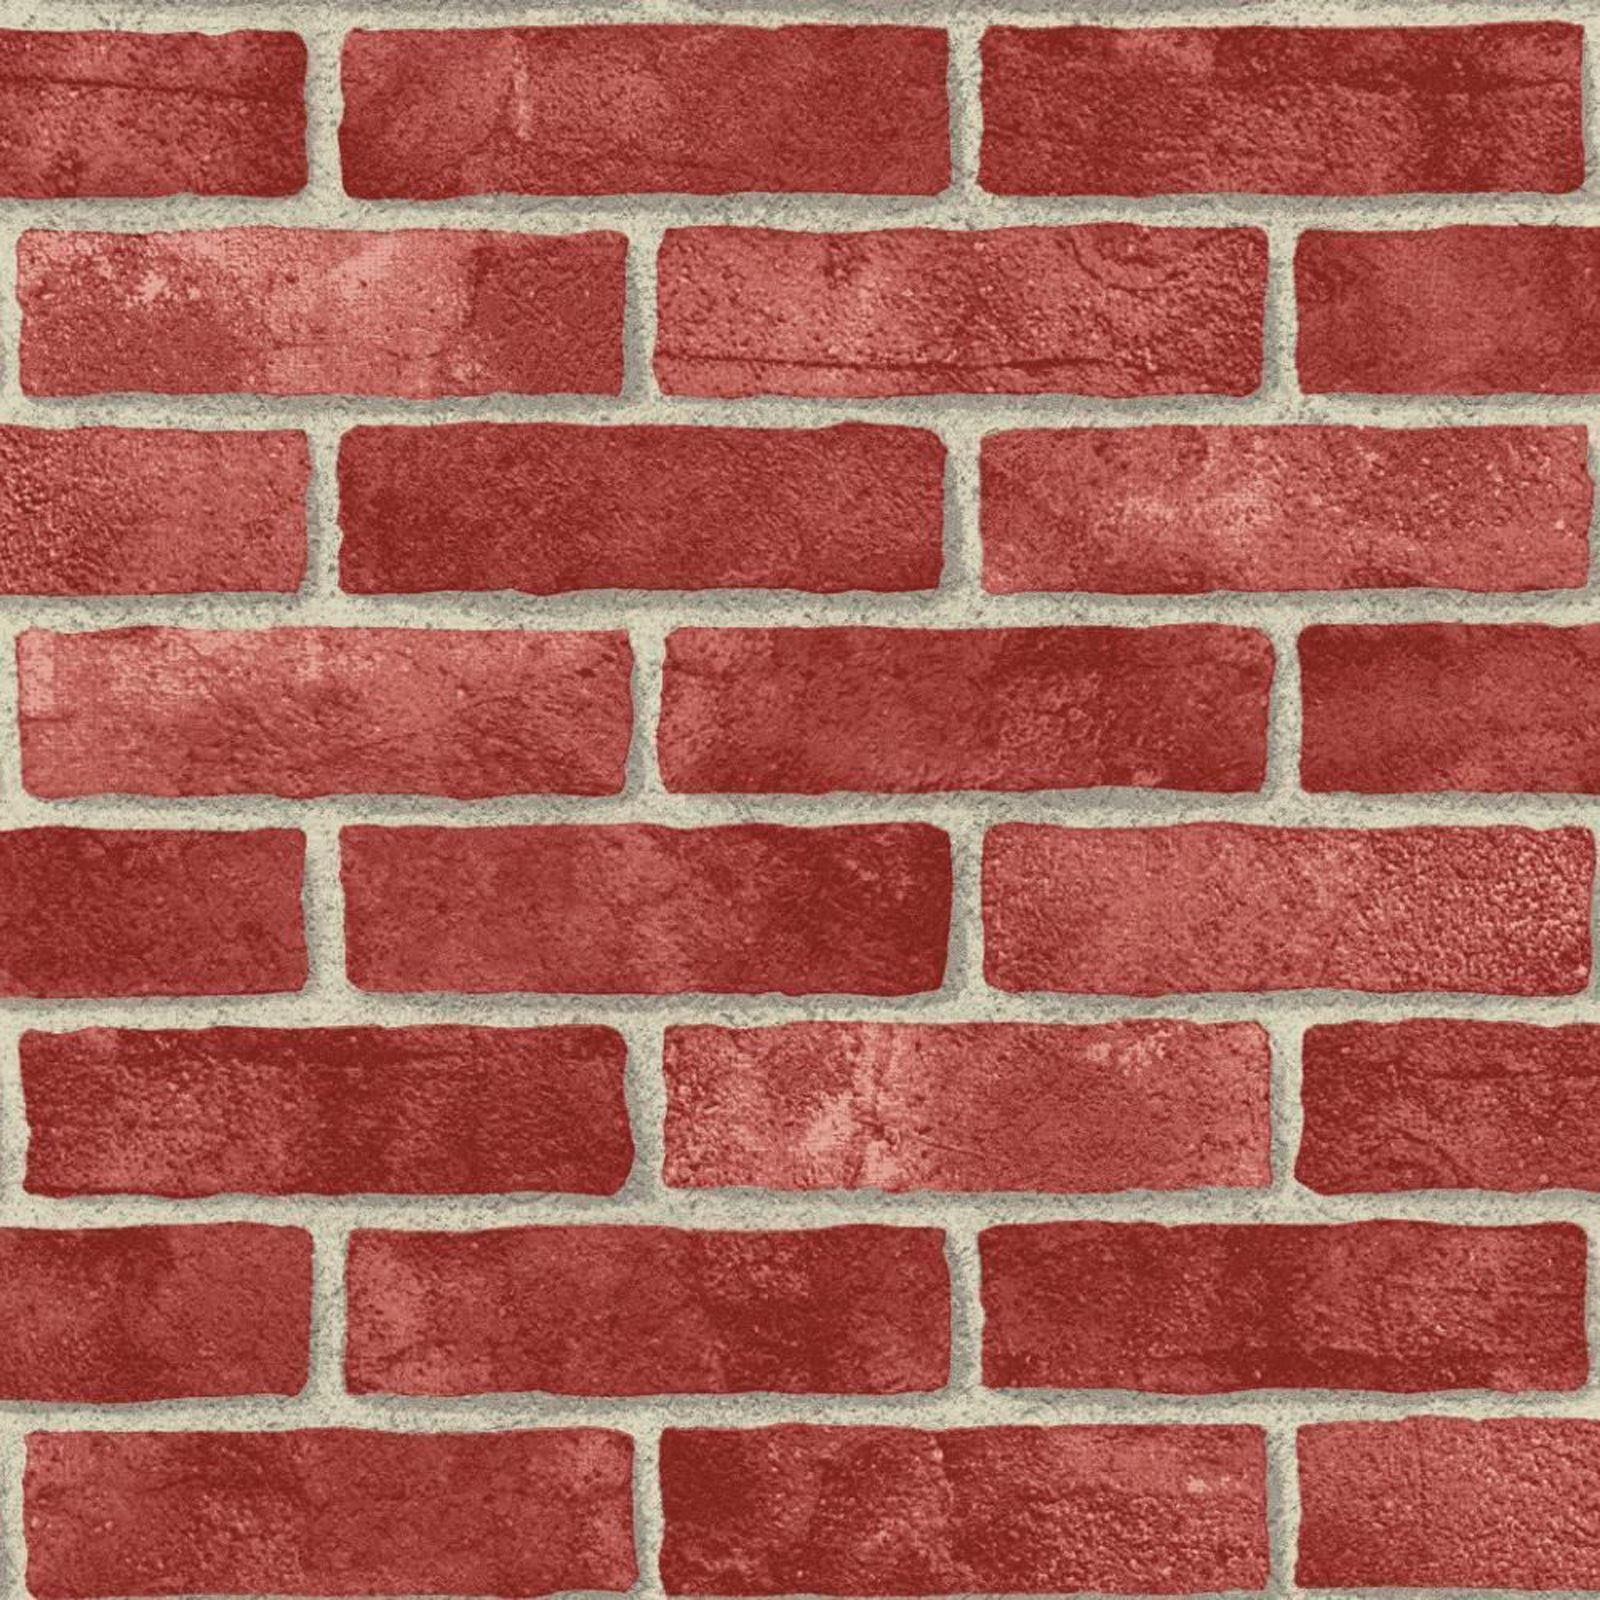 Red brick effect wallpaper suitable for any room feature Red brick wallpaper living room